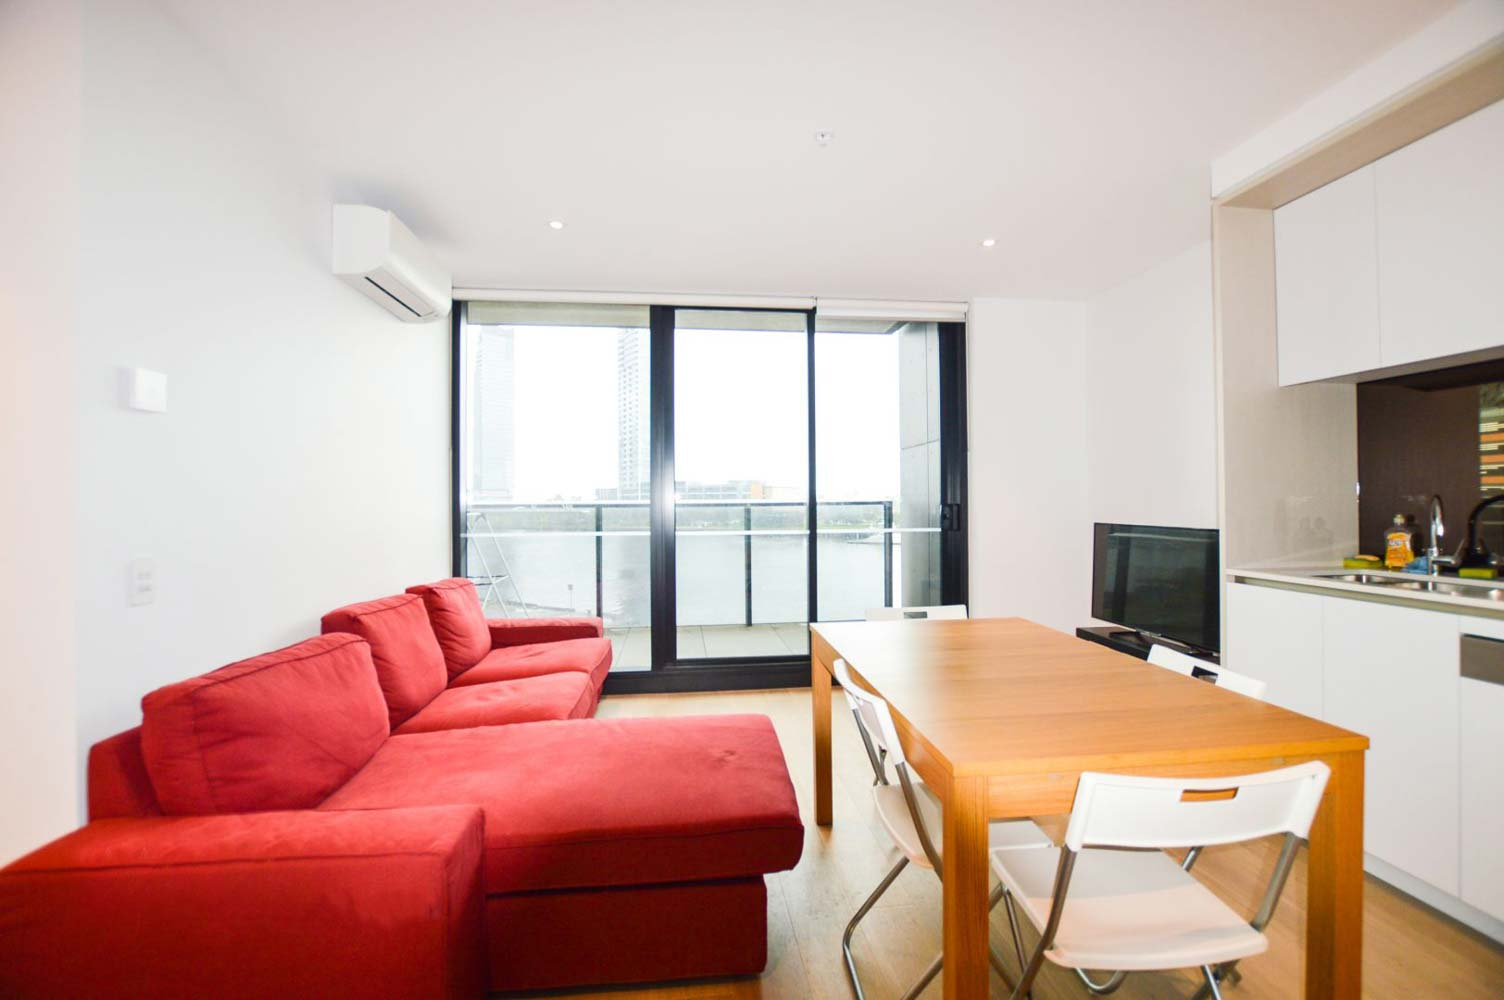 212-915-Collins-Street-Melbourne-Student-Accommodation-Melbourne-Living-Area-Unilodgers